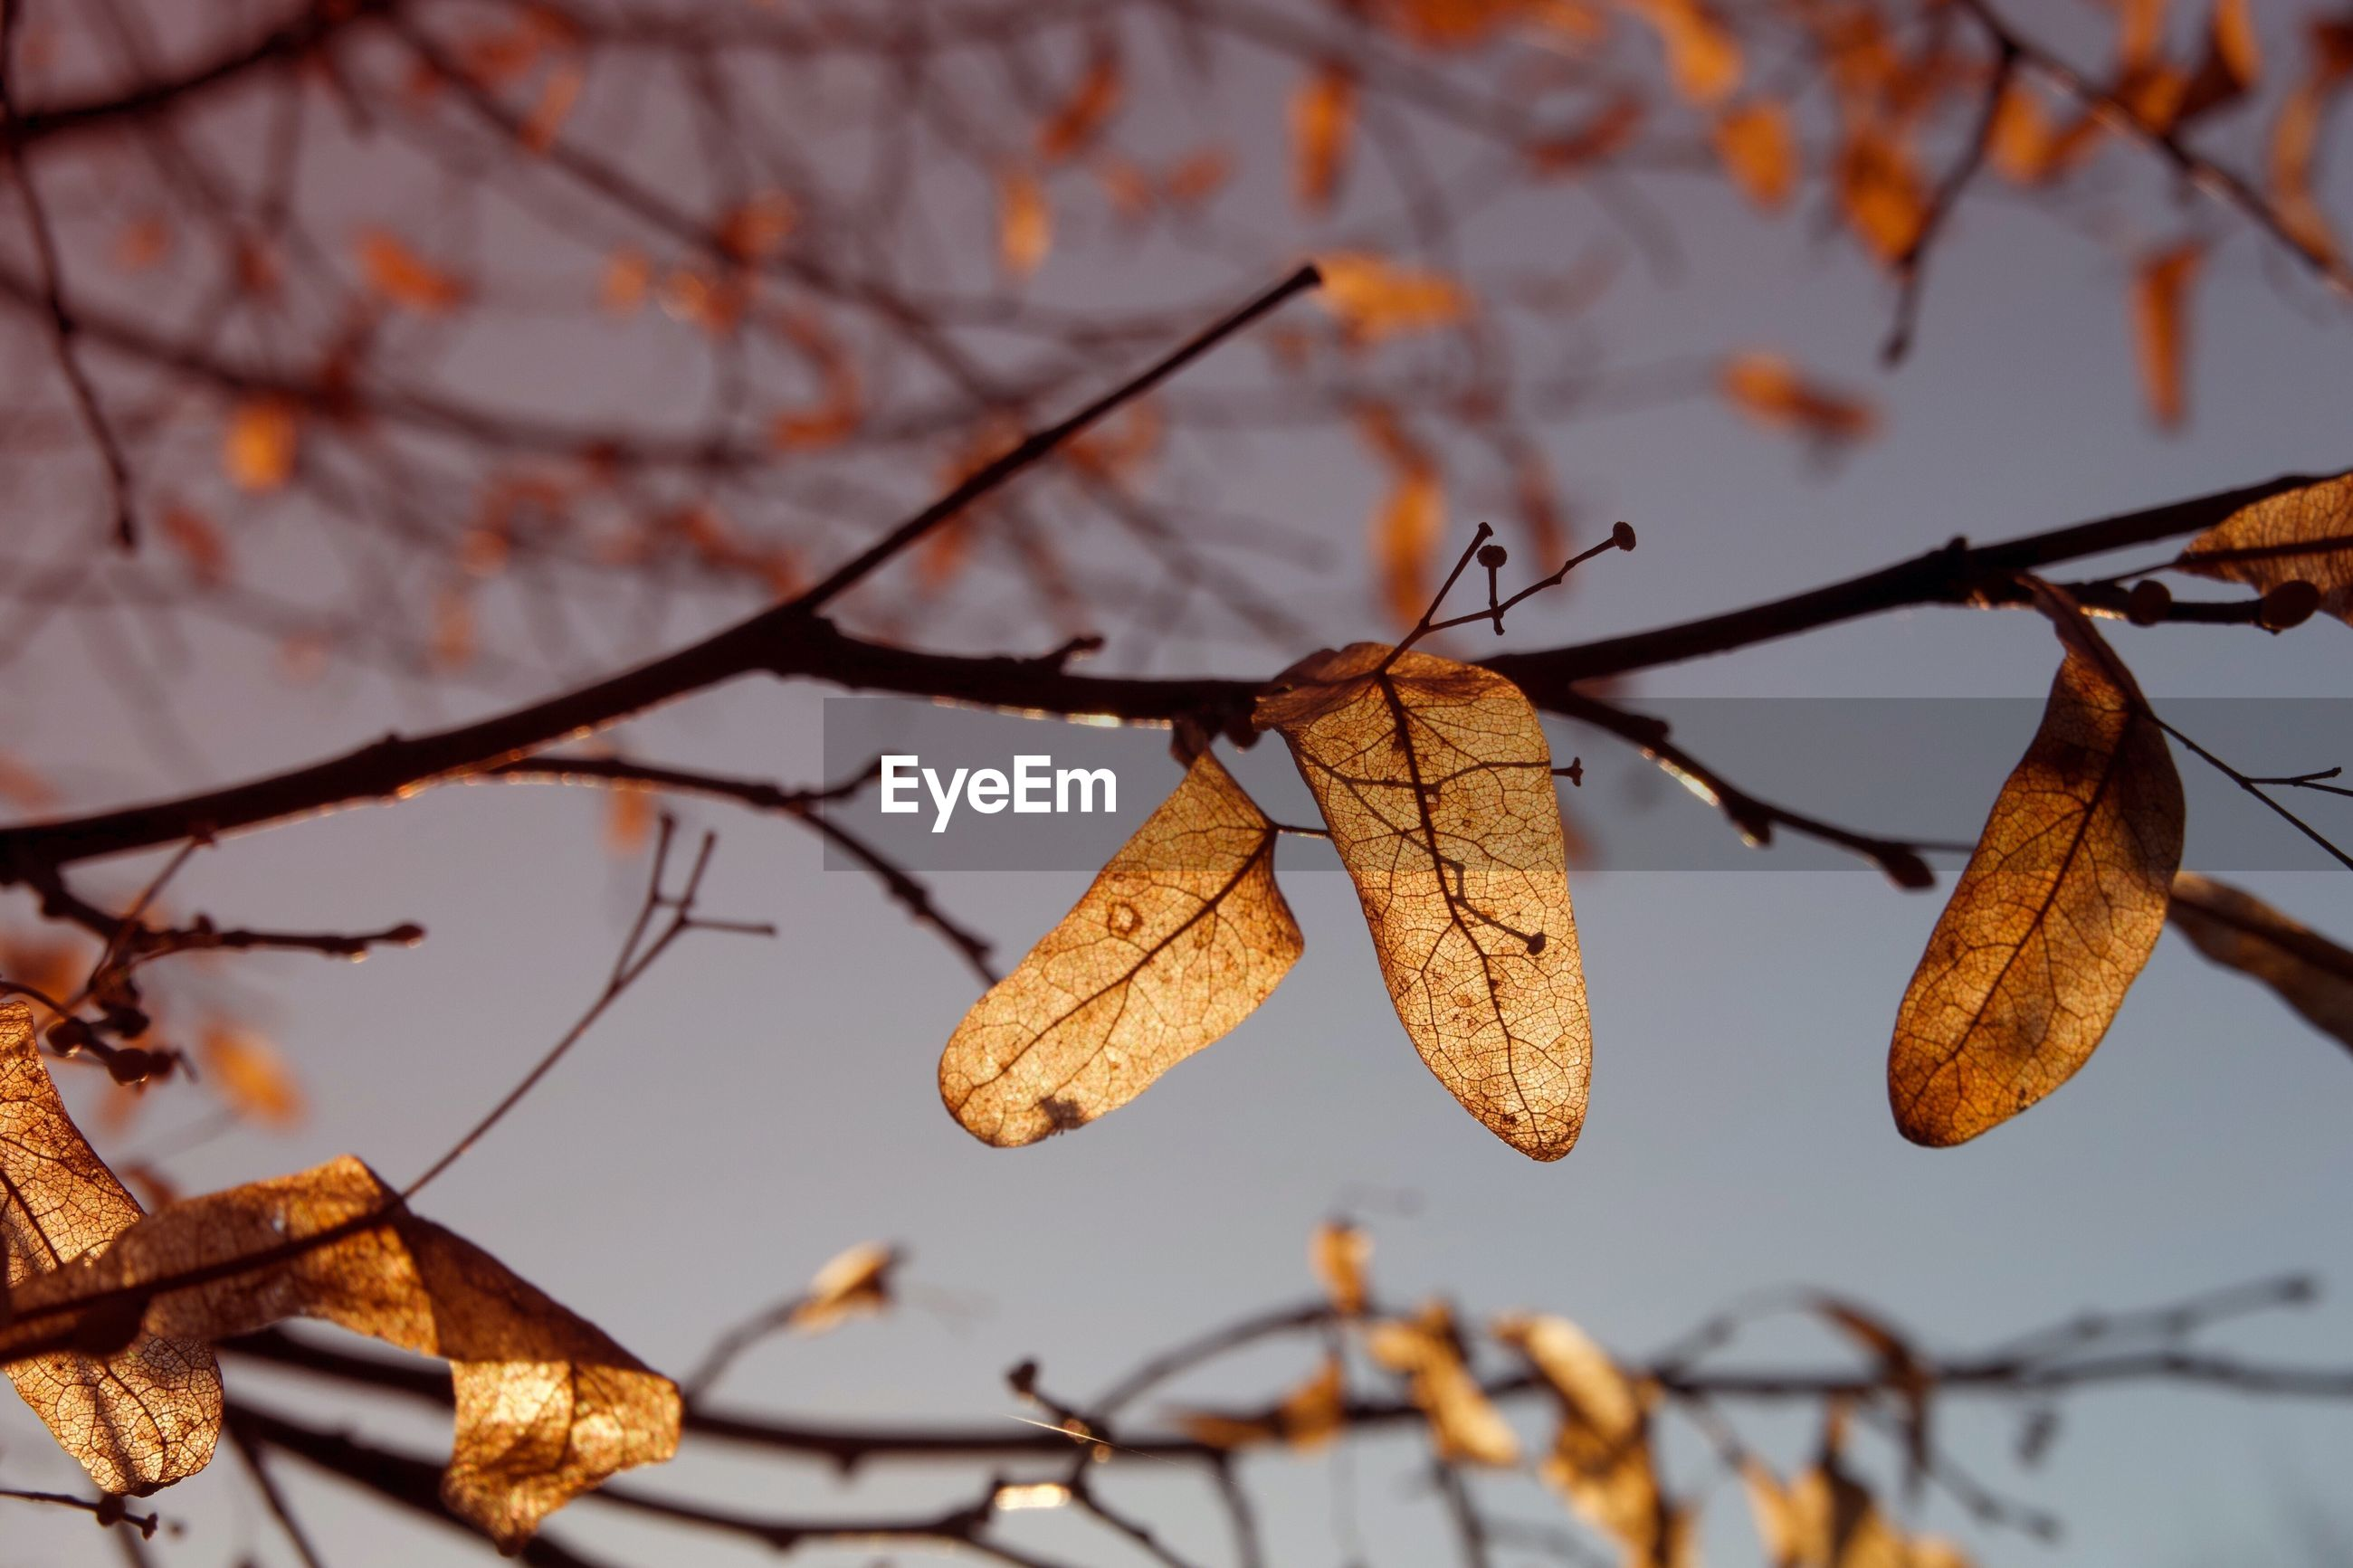 LOW ANGLE VIEW OF DRIED LEAVES ON TREE